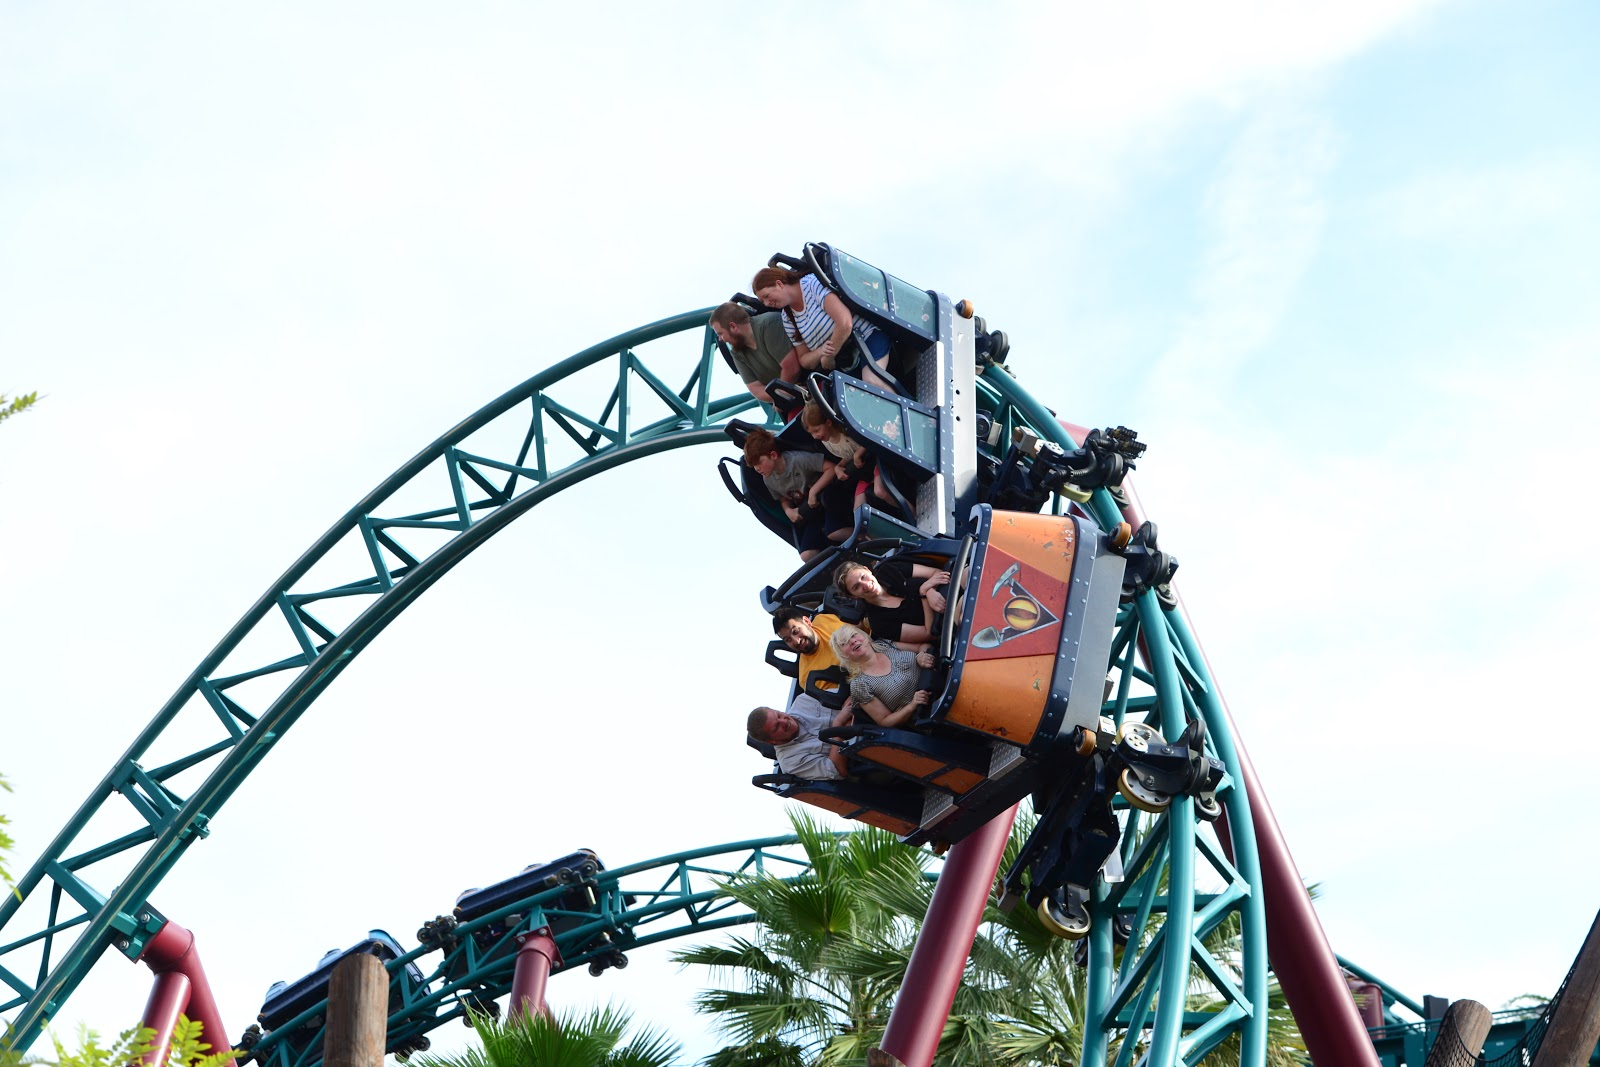 Close Up Animal Encounters And Rides To Enjoy At The Seaworld Parks Florida North East Family Fun